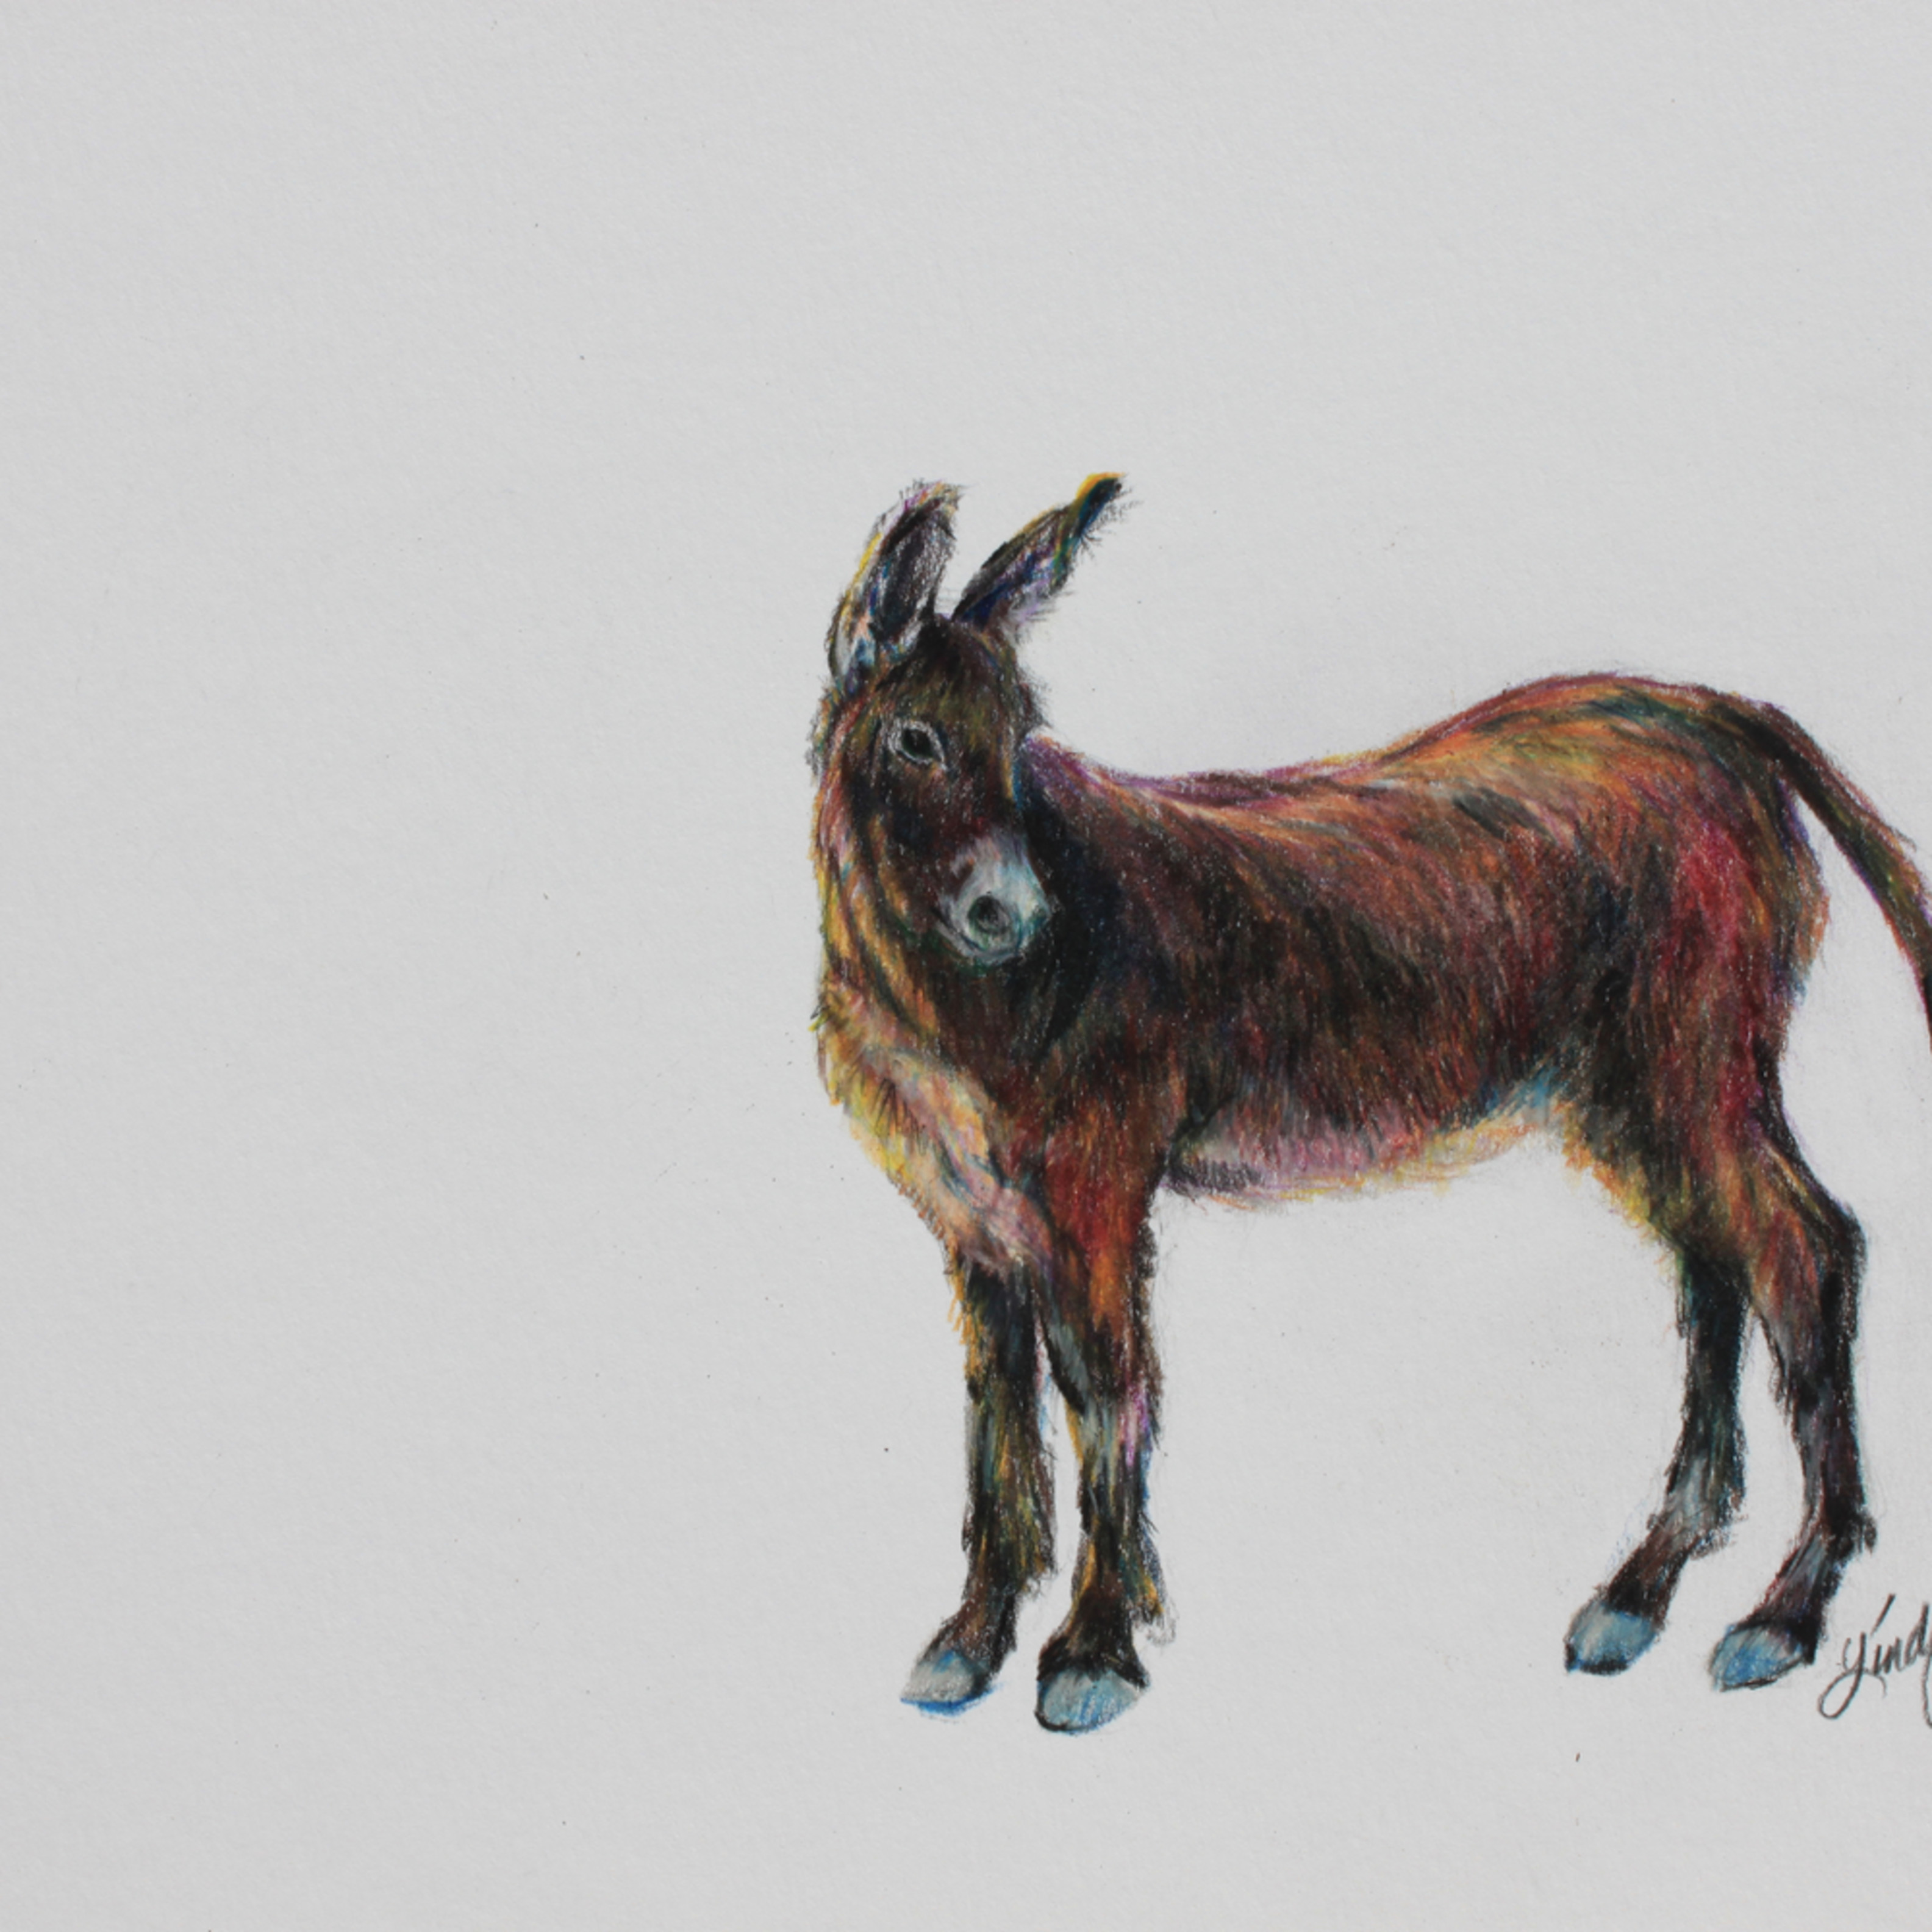 31i14 wild and free 8x10 colored pencil lindy c severns rtgkej